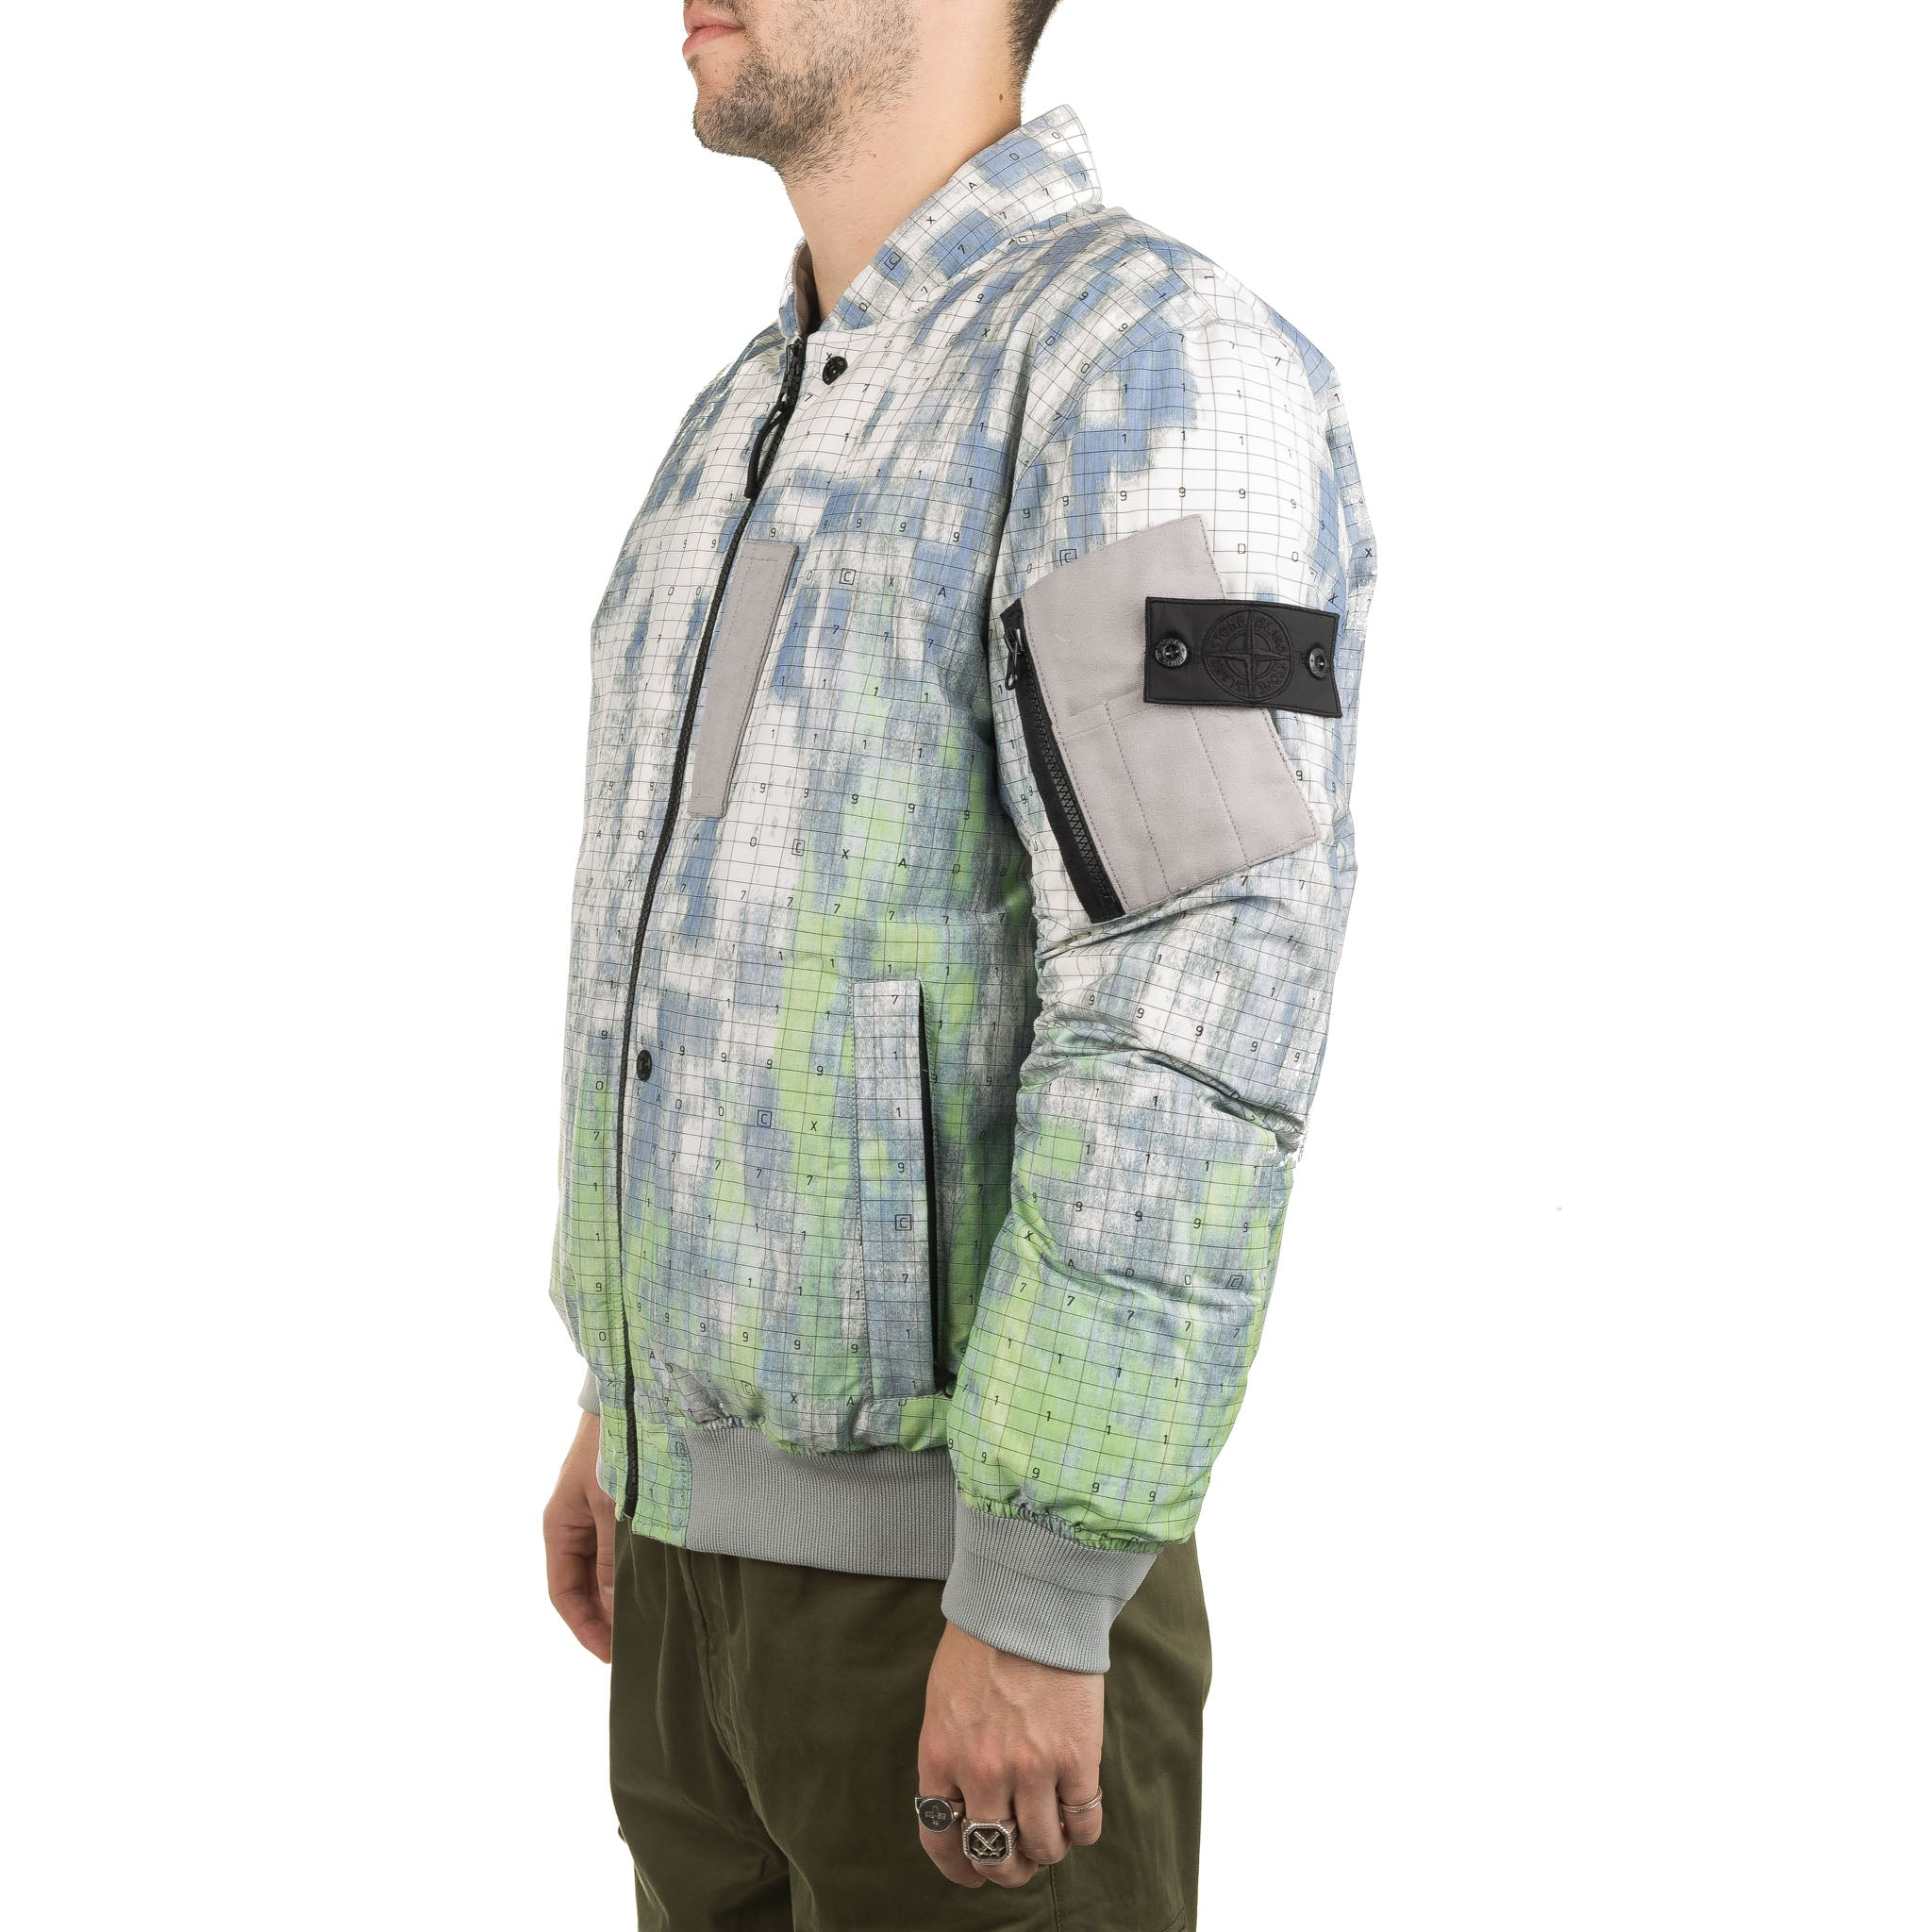 SP DPM Chine Bomber Down Jacket 711940813 Camouflage